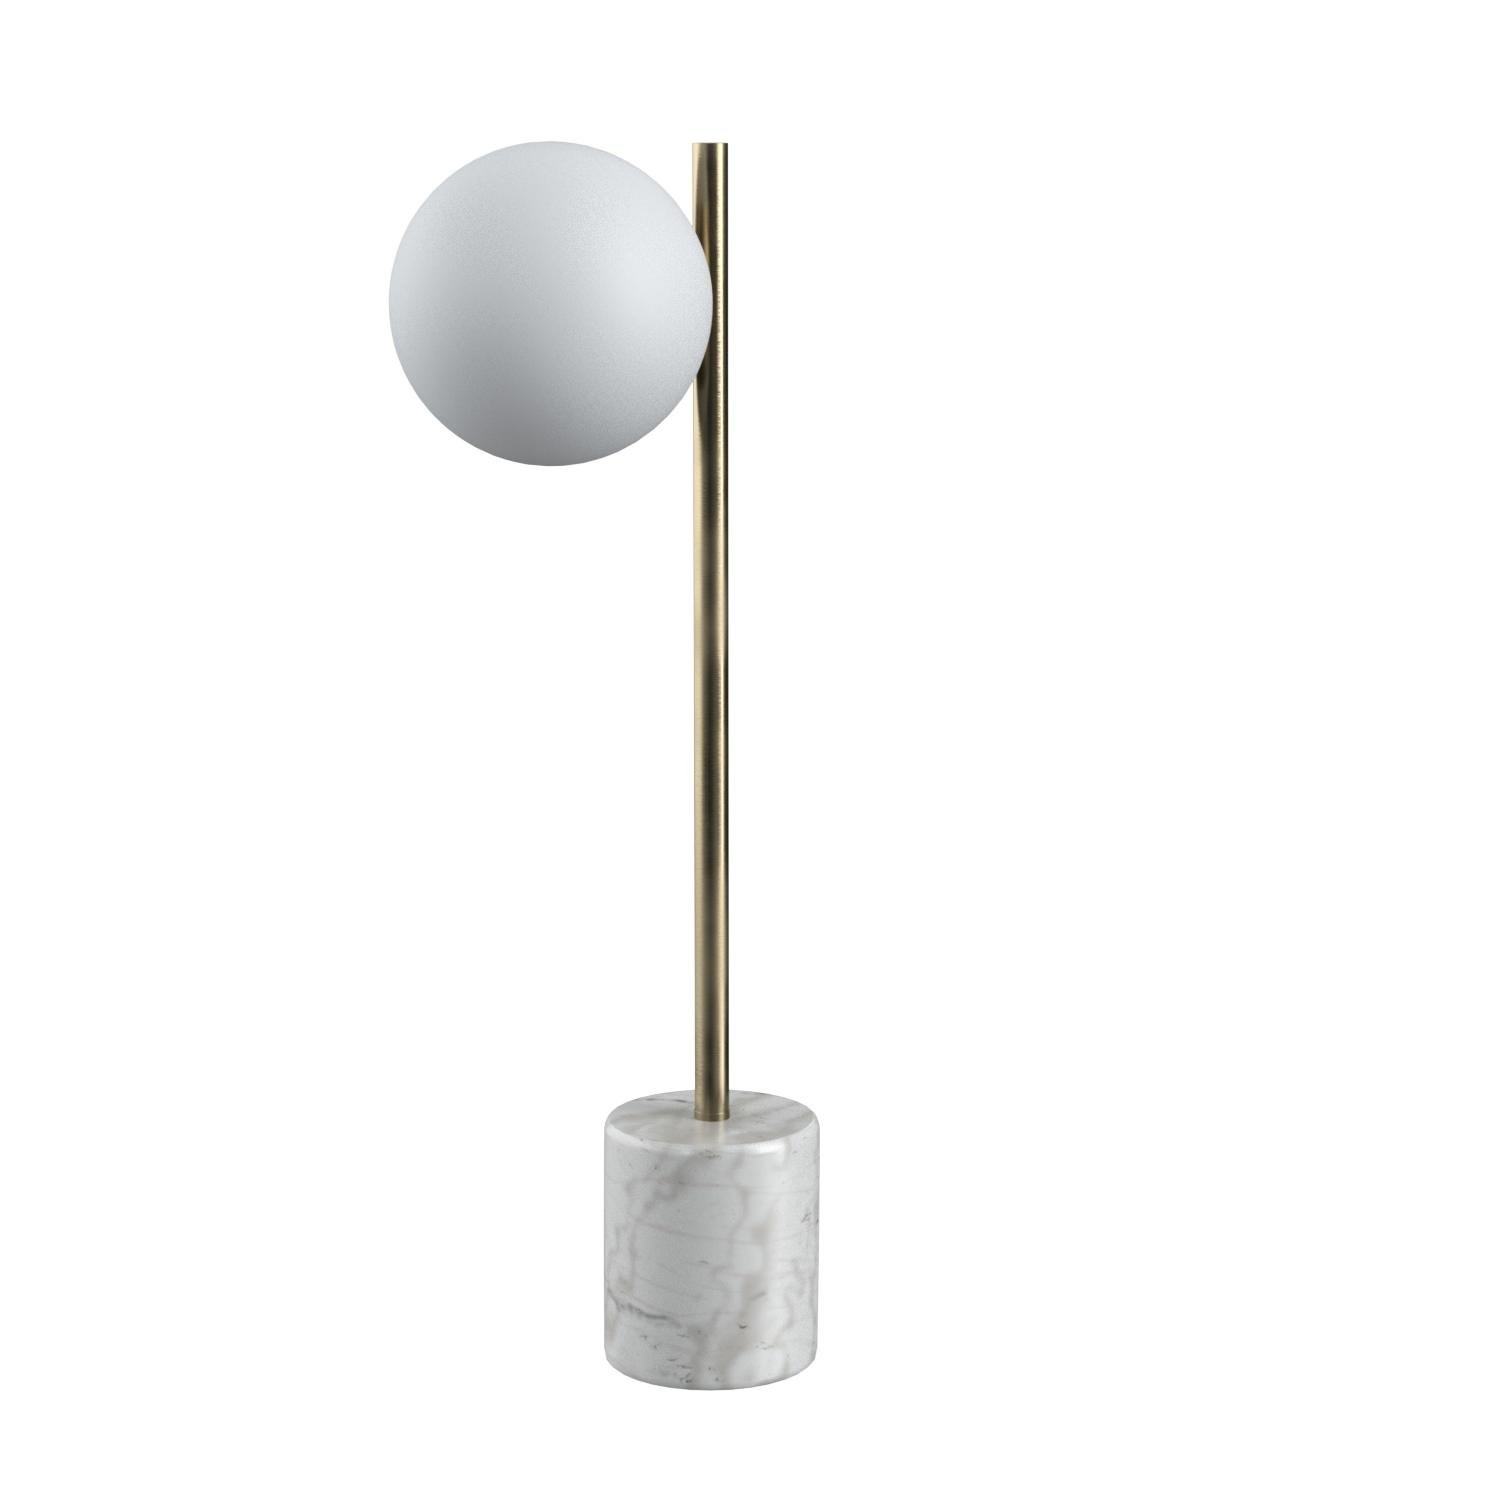 Rivet Modern Glass Globe and Marble Table Lamp with LED Bulb, 23''H, Brass, White by Rivet (Image #9)